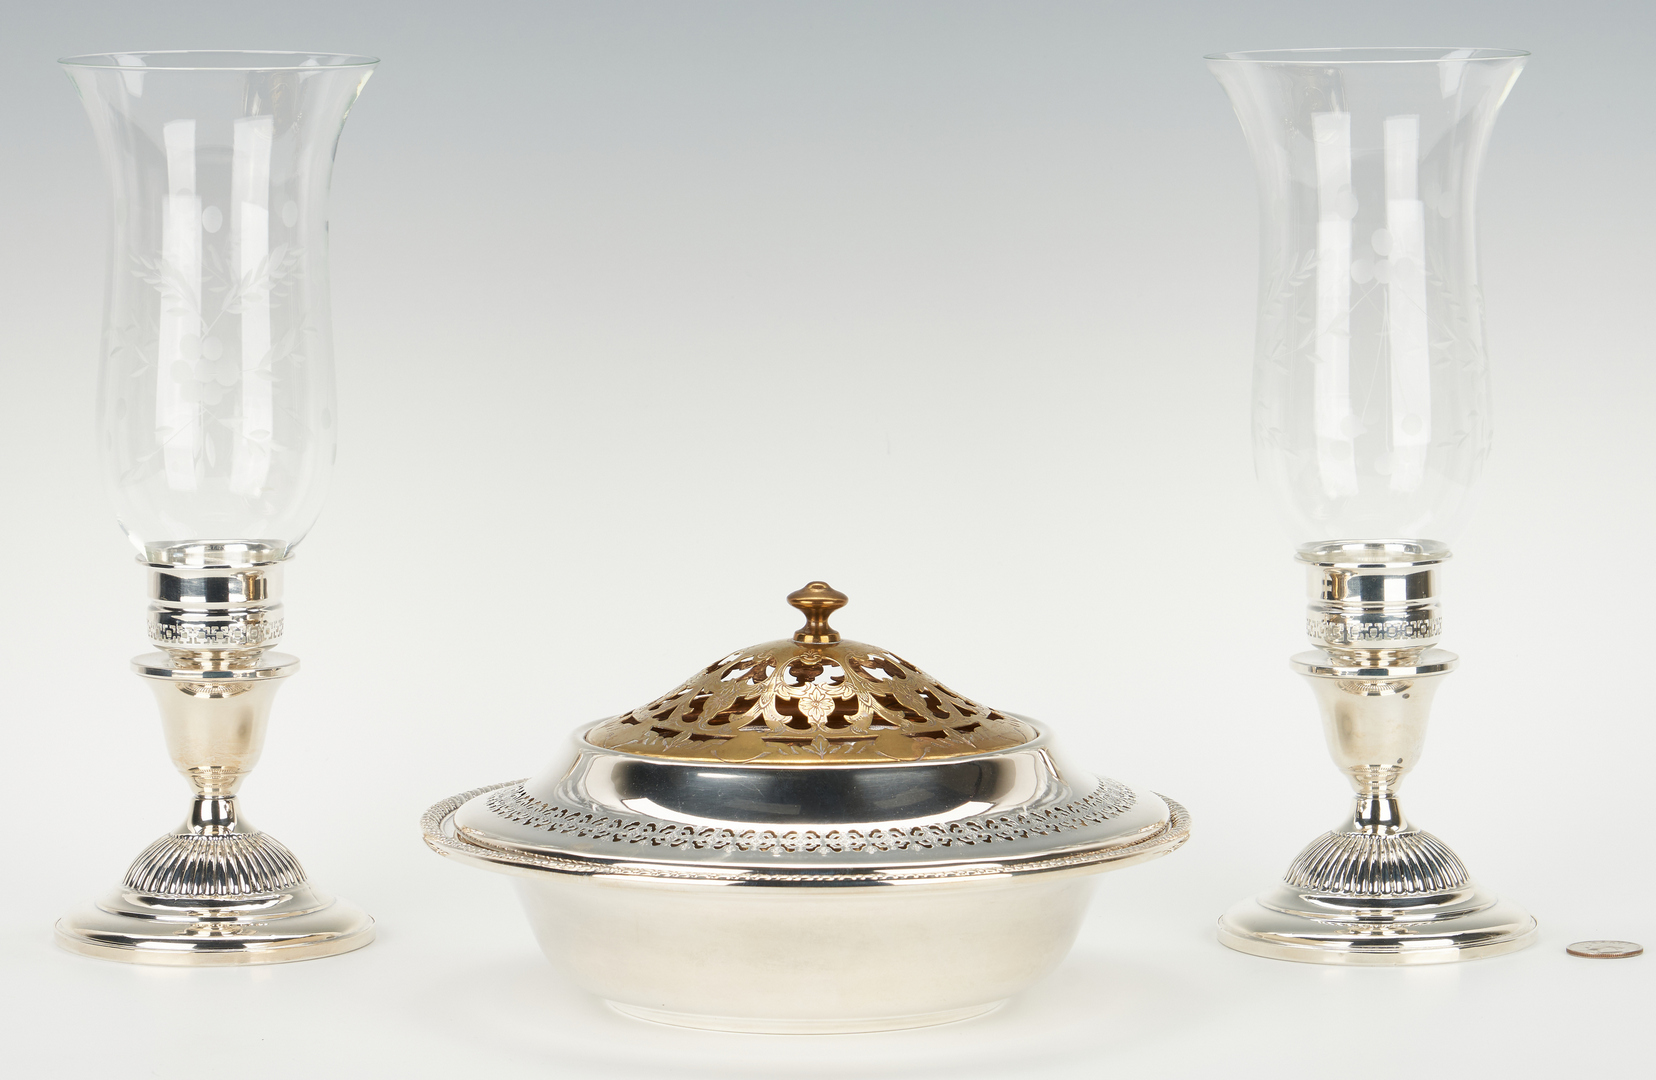 Lot 945: Sterling bowls incl. flower frog, plus candlestick lamps